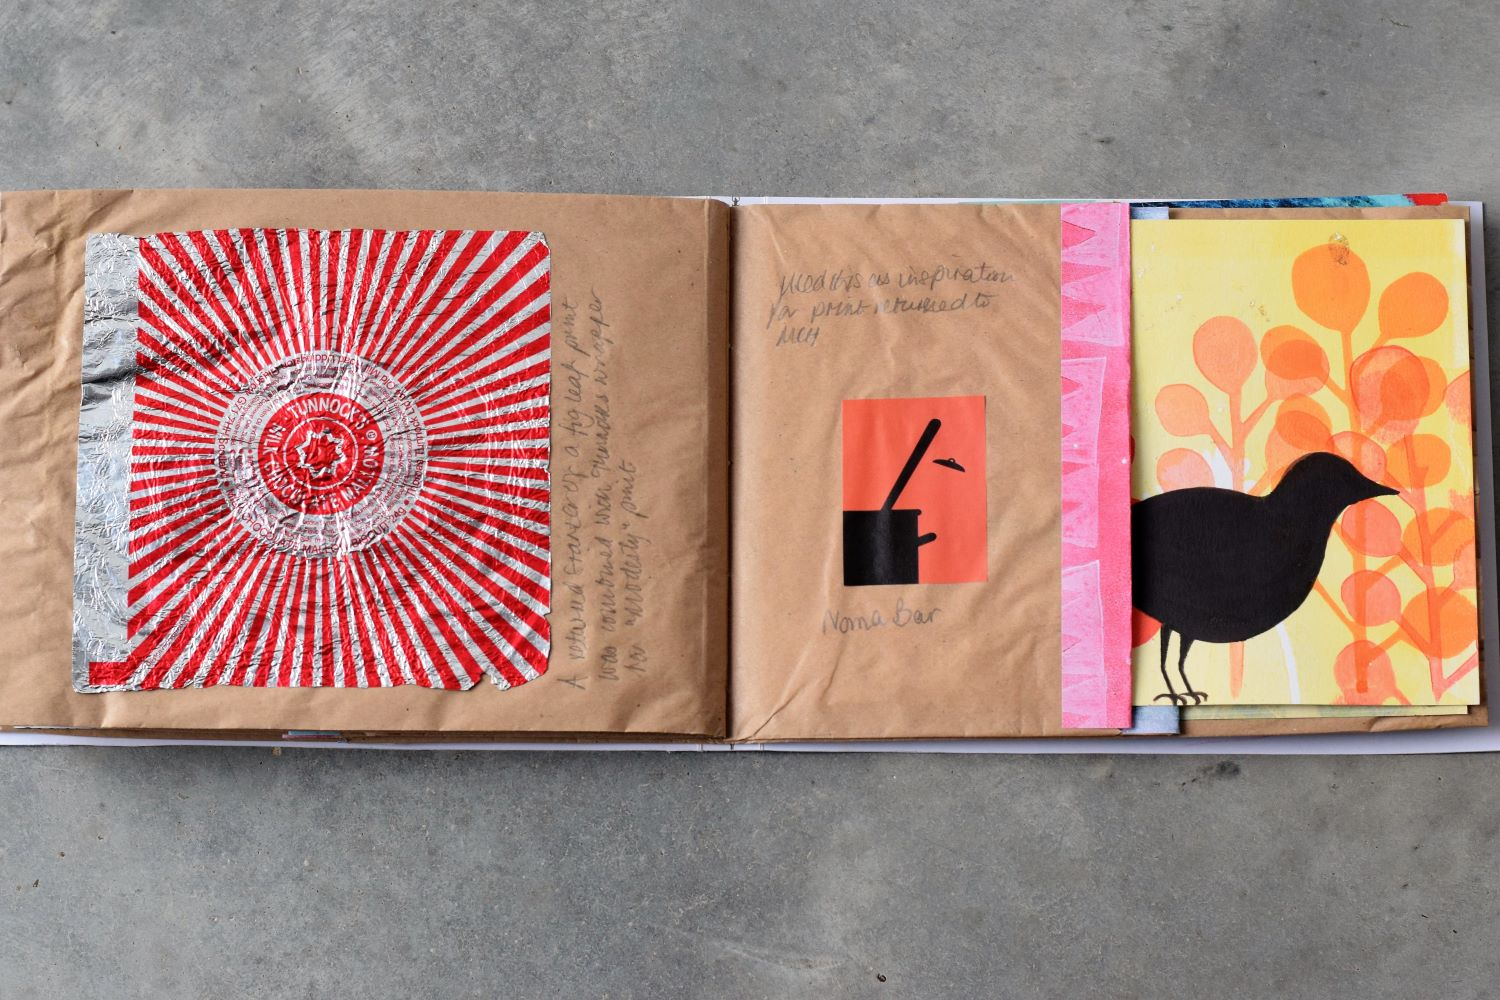 Paper bag book as part of the Letterbox Art Collaboration project. Tunnocks wrapper and blackbird